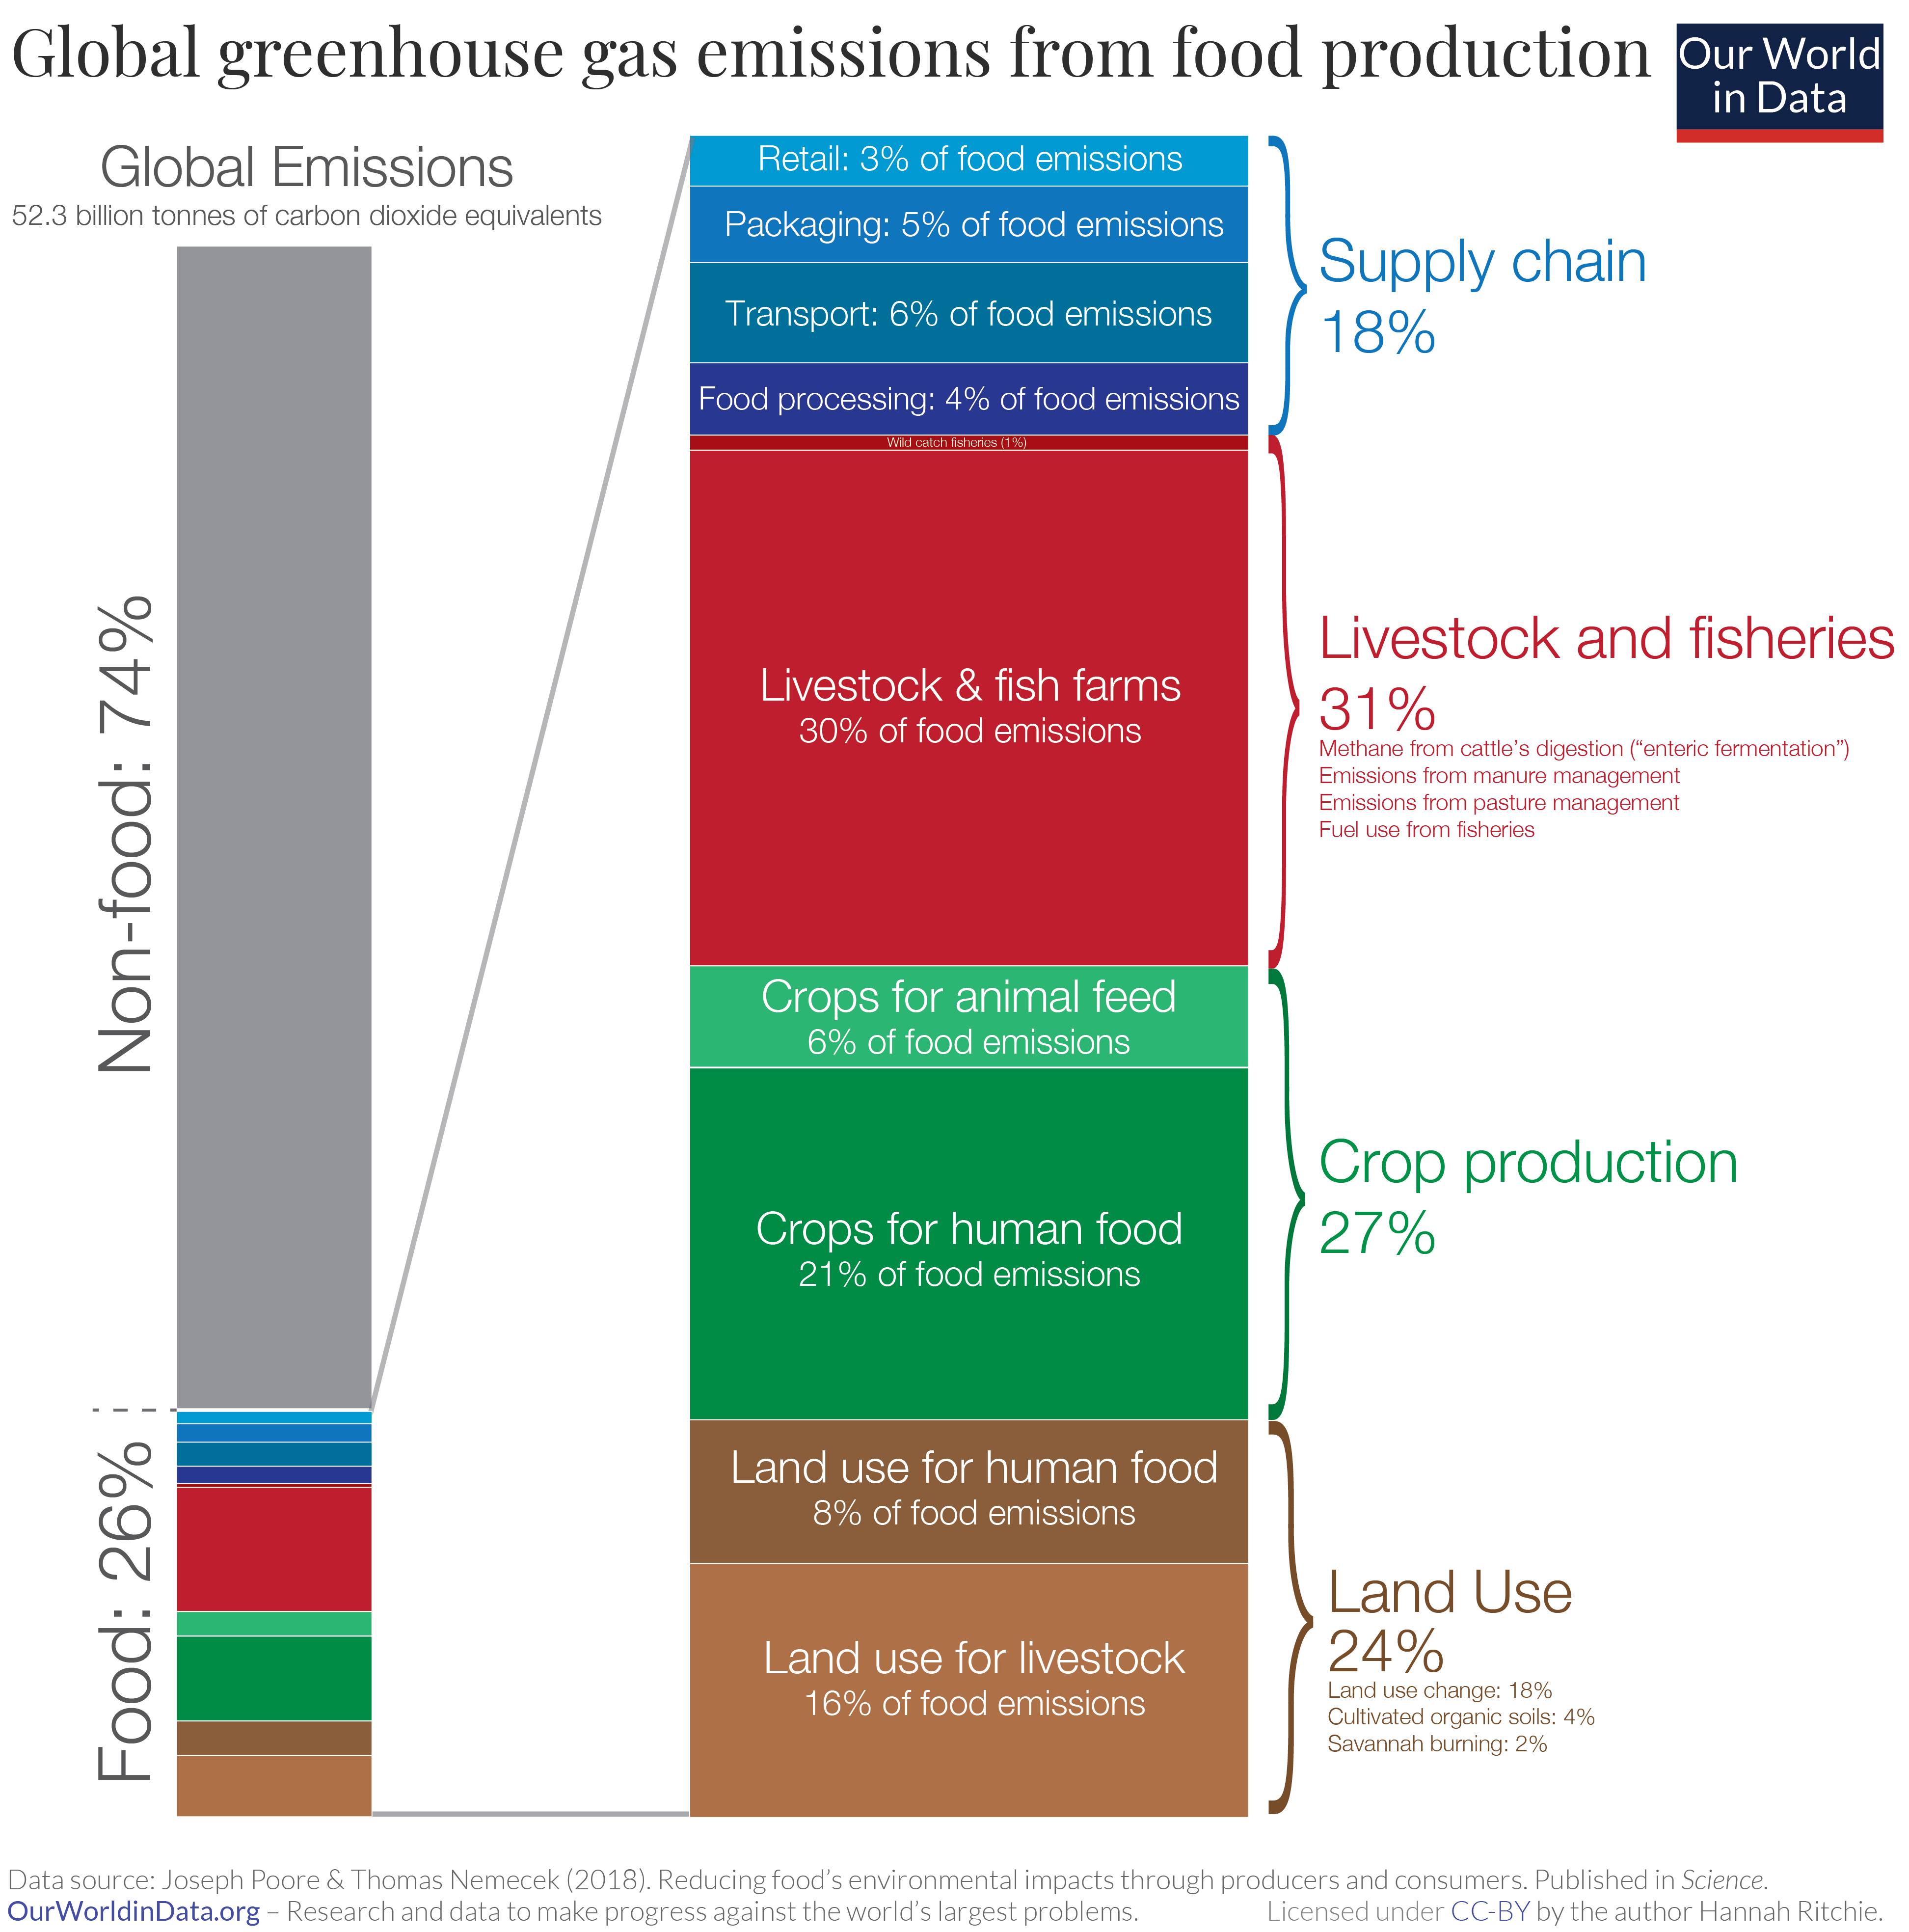 livestock food emissions fish farm agriculture carbon fishery supply chain land use crop production